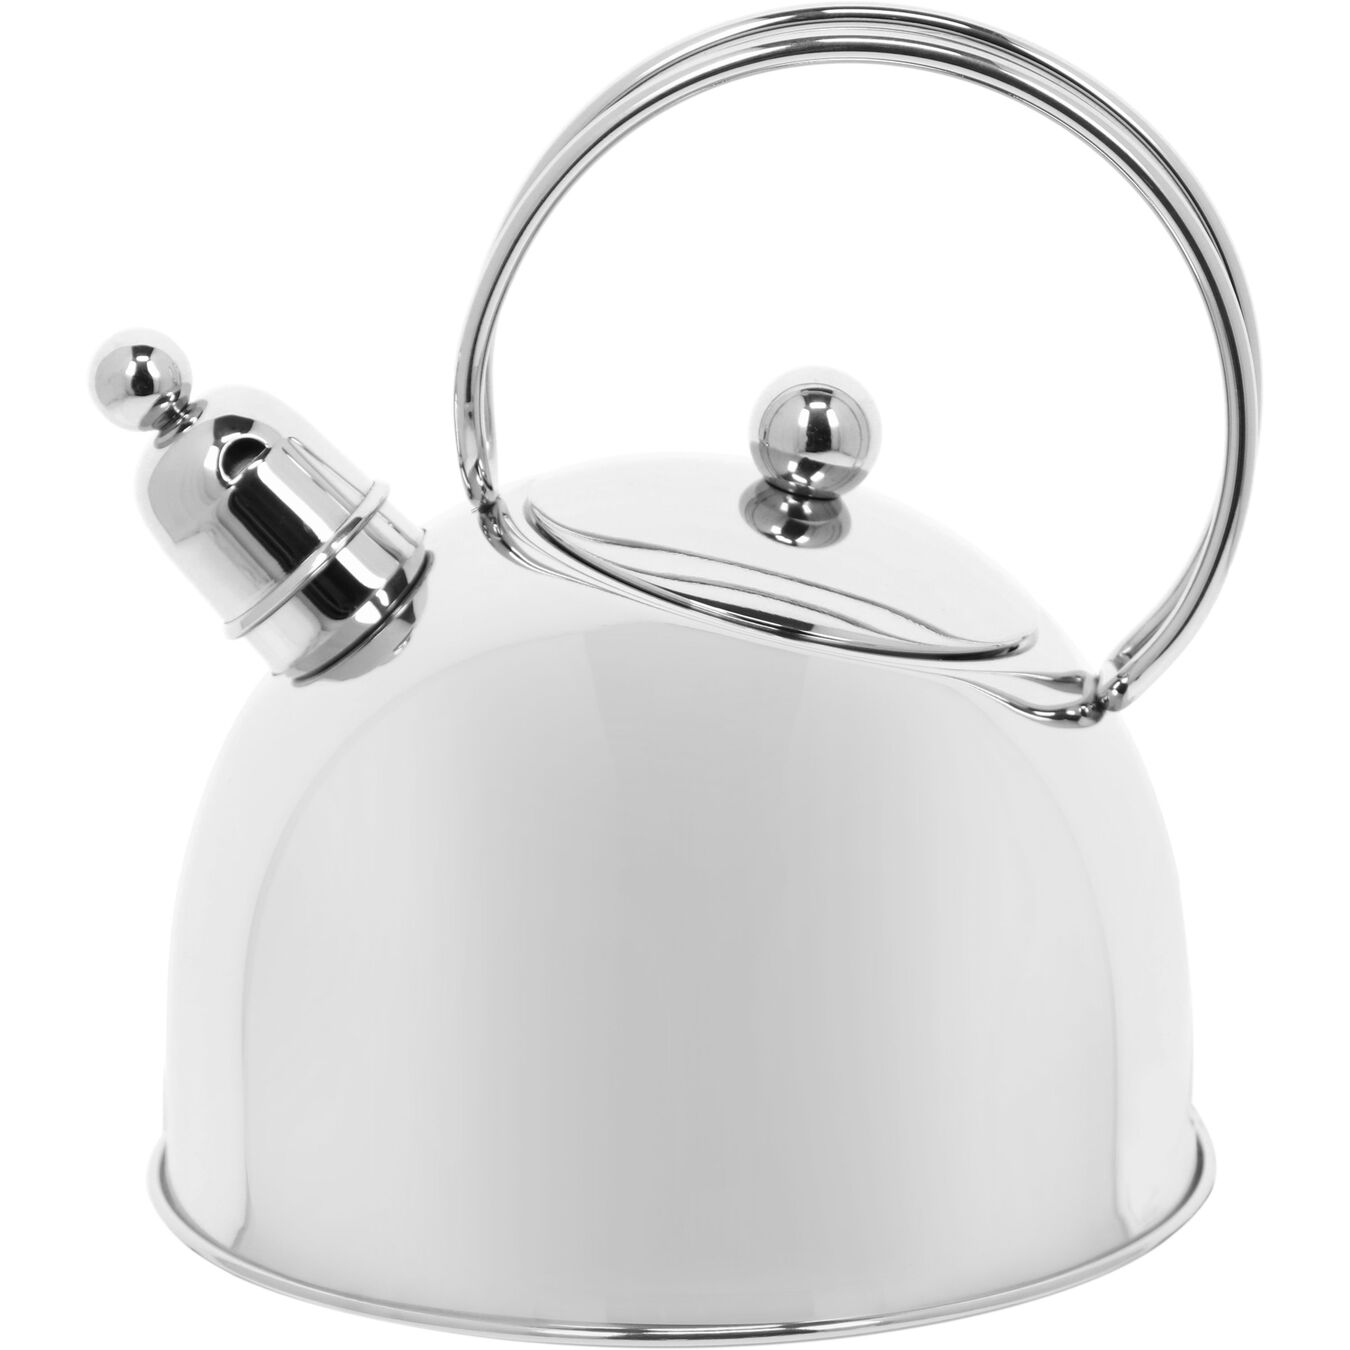 85-oz Kettle, 18/10 Stainless Steel ,,large 1